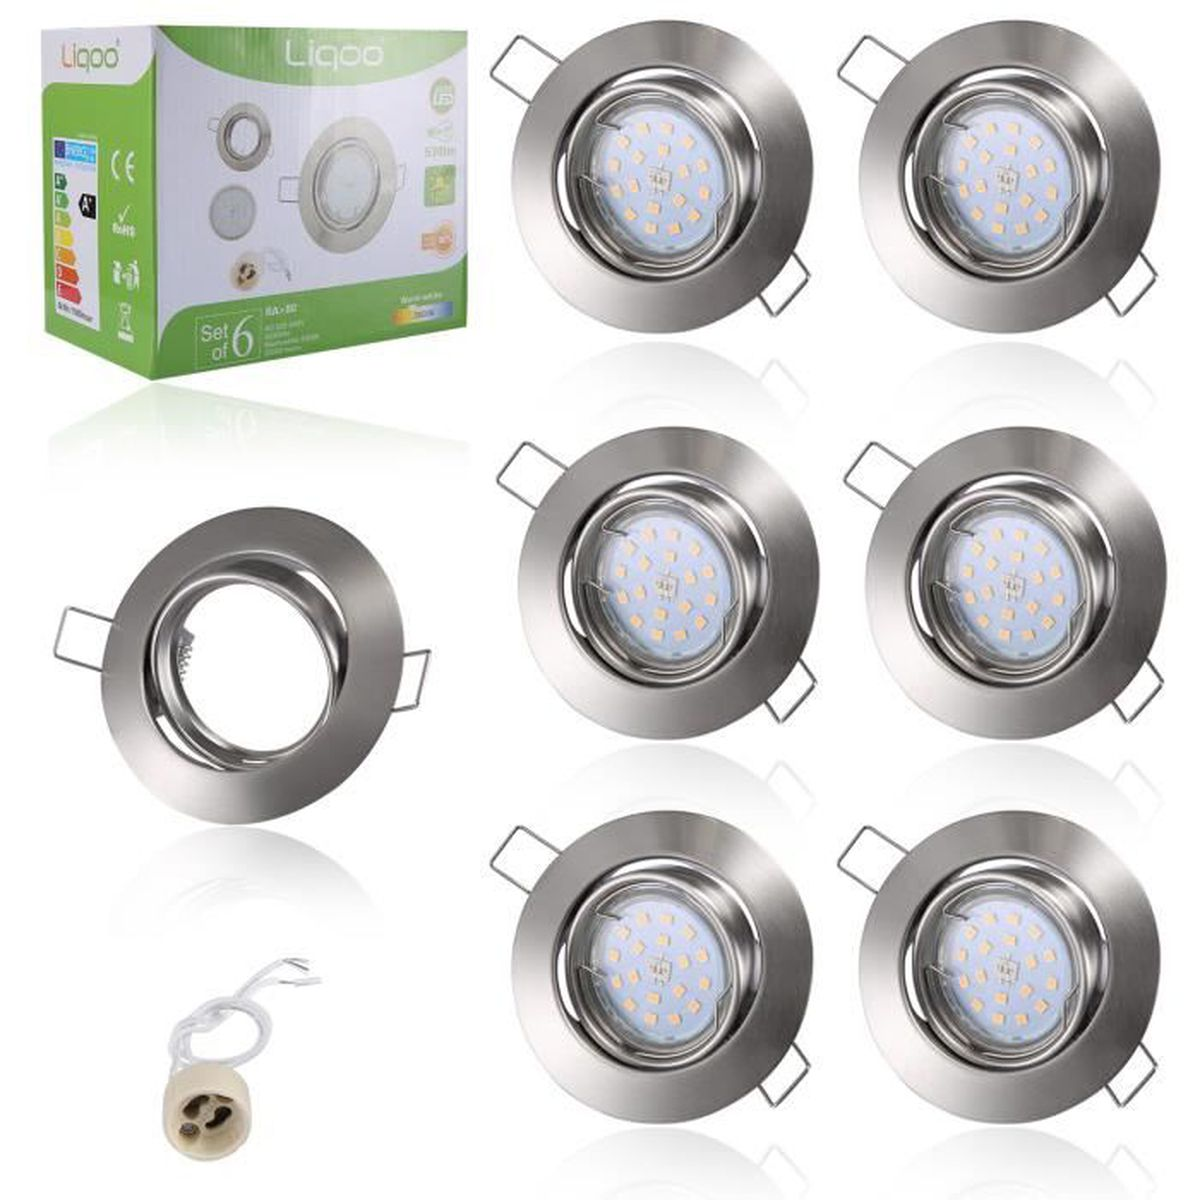 liqoo lot de 6 spots encastrables gu10 led 6w 530lm projecteur rond 220v blanc chaud lampe. Black Bedroom Furniture Sets. Home Design Ideas